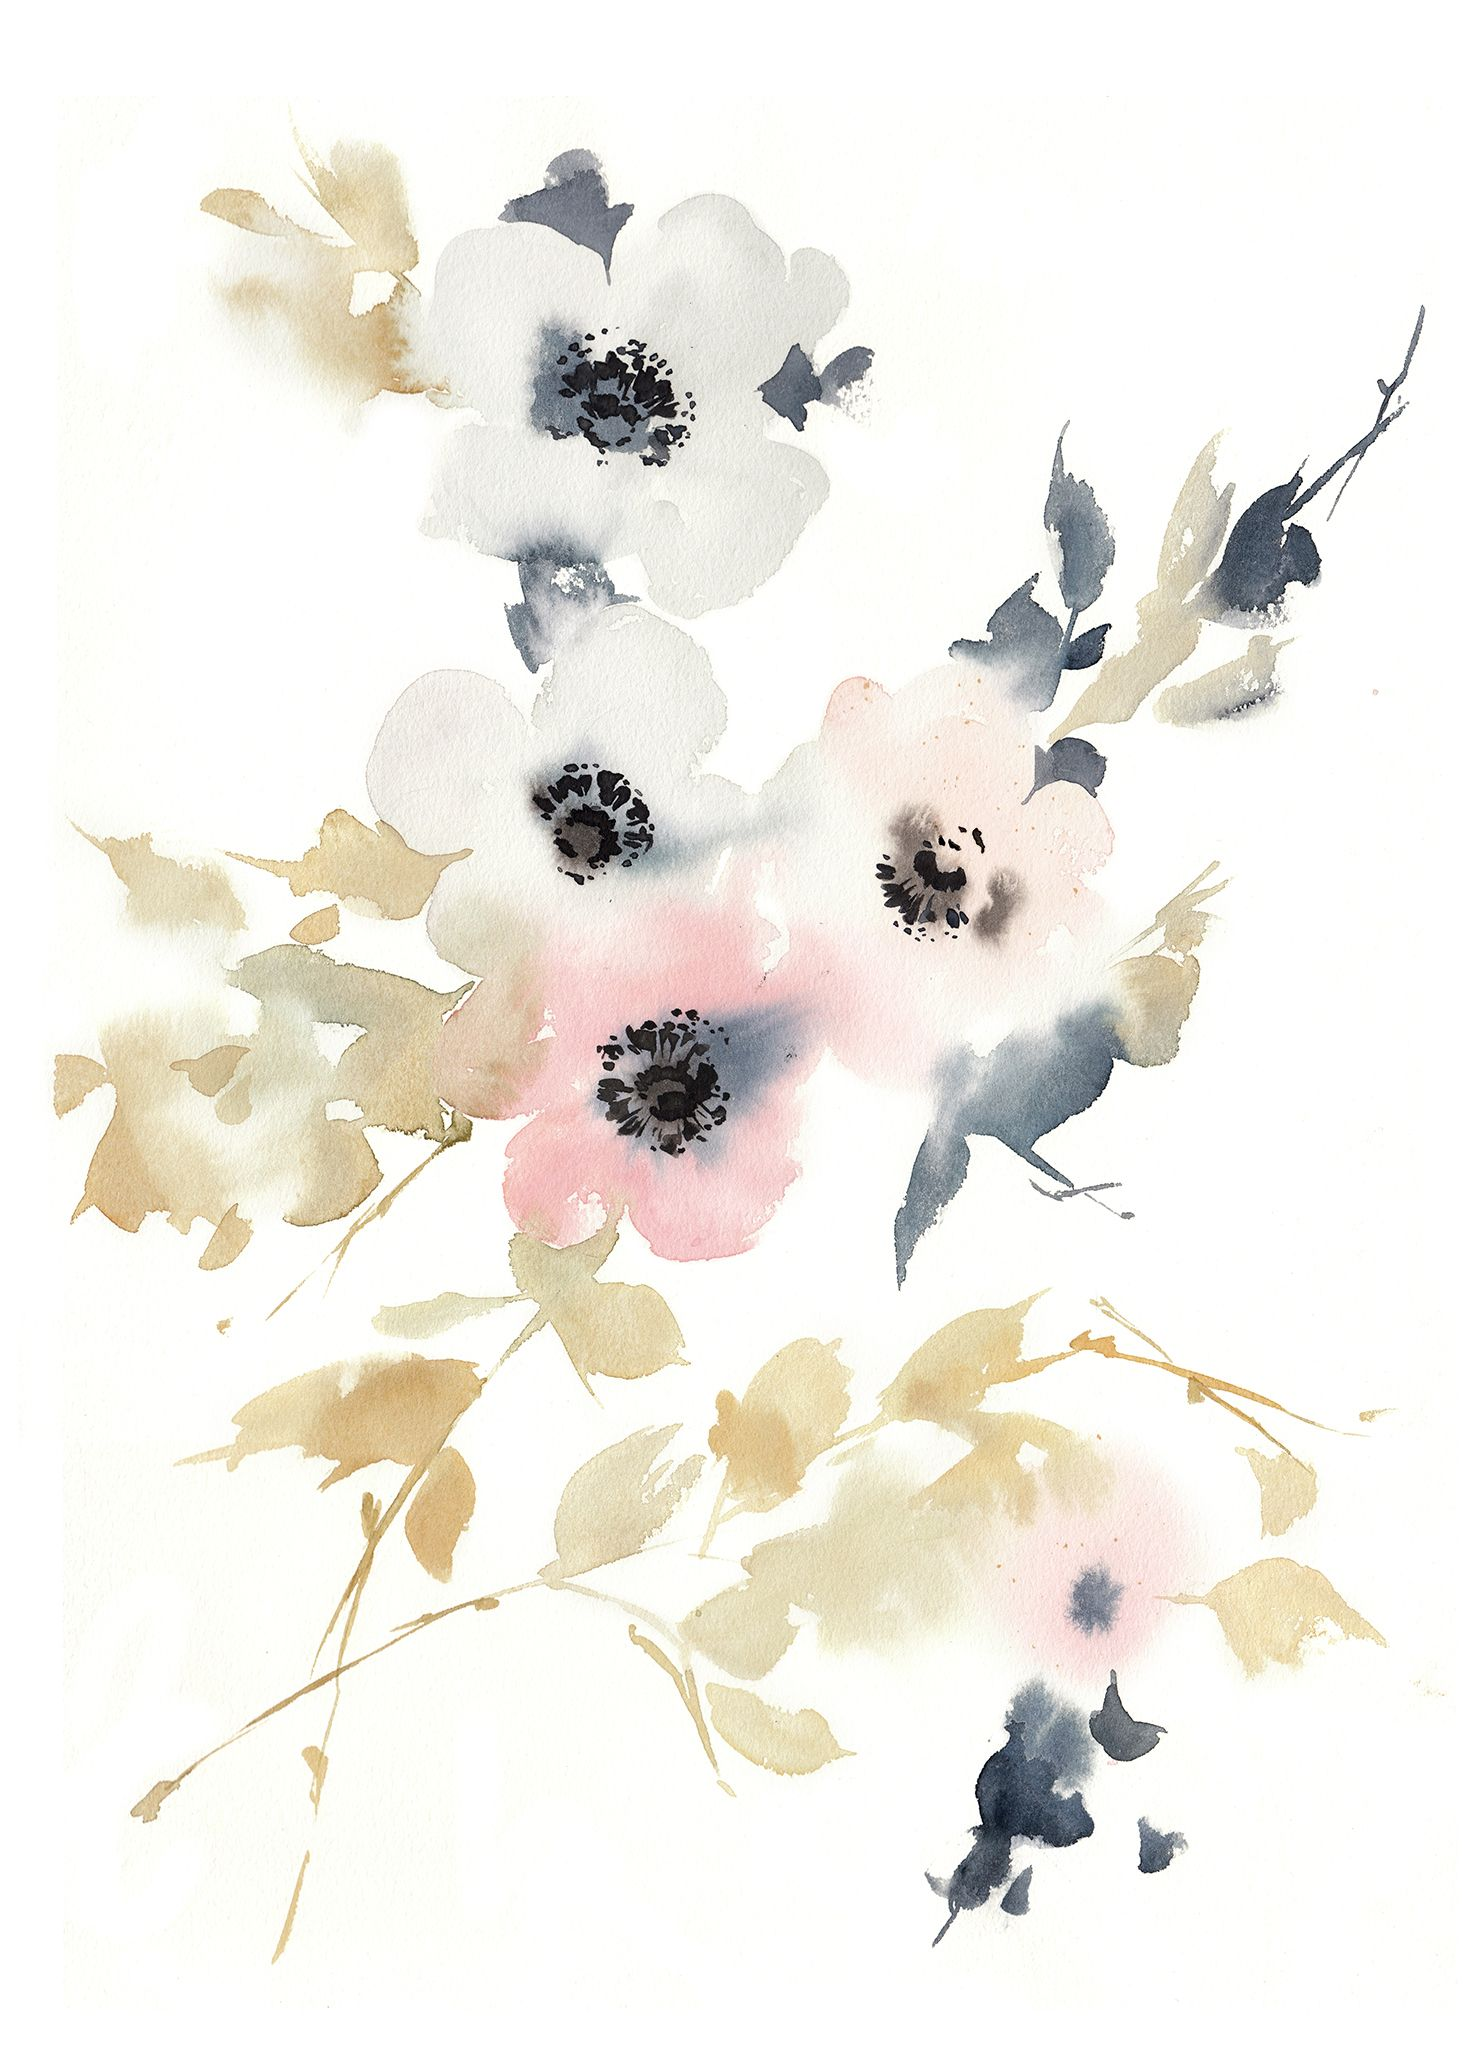 Printable Pink Abstract Flowers Watercolor Wall Art Botanical Loose Flowers Art Abstract Anemone Floral Wall Art Nursery Floral Wall Art Abstract Flowers Abstract Watercolor Flower Floral Nursery Wall Art